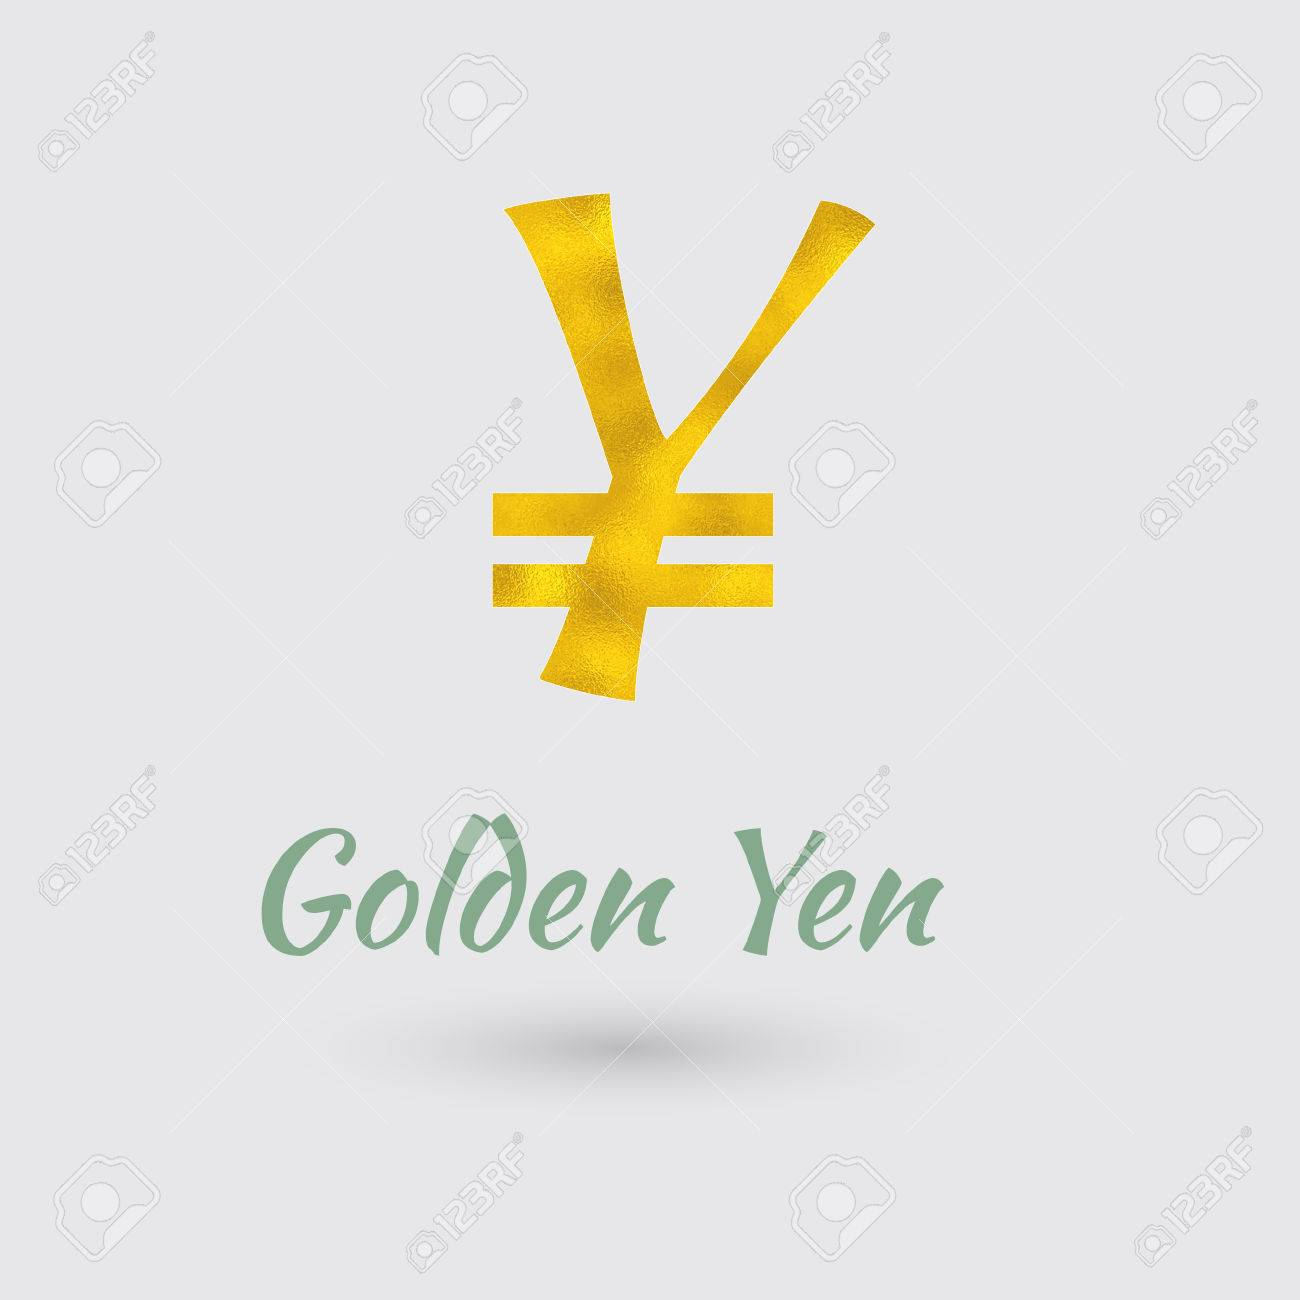 Symbol Of The Yen Currency With Golden Texture Text With The